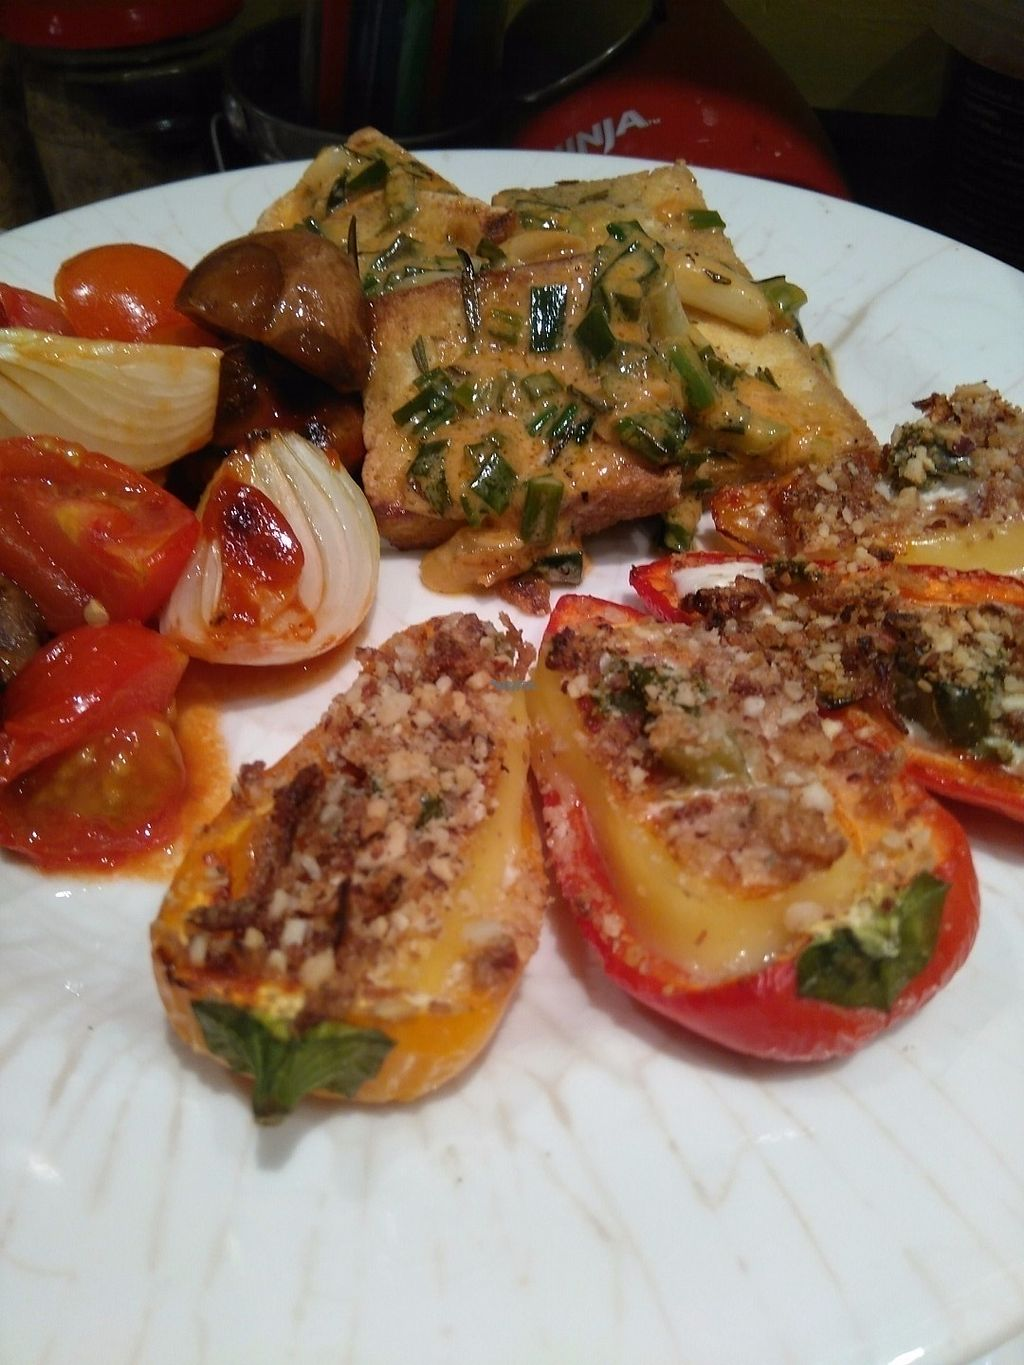 """Photo of Green Revolution  by <a href=""""/members/profile/HannaGarcez"""">HannaGarcez</a> <br/>Baked Jalapeño poppers buttery tofu steaks  <br/> August 27, 2016  - <a href='/contact/abuse/image/40809/171823'>Report</a>"""